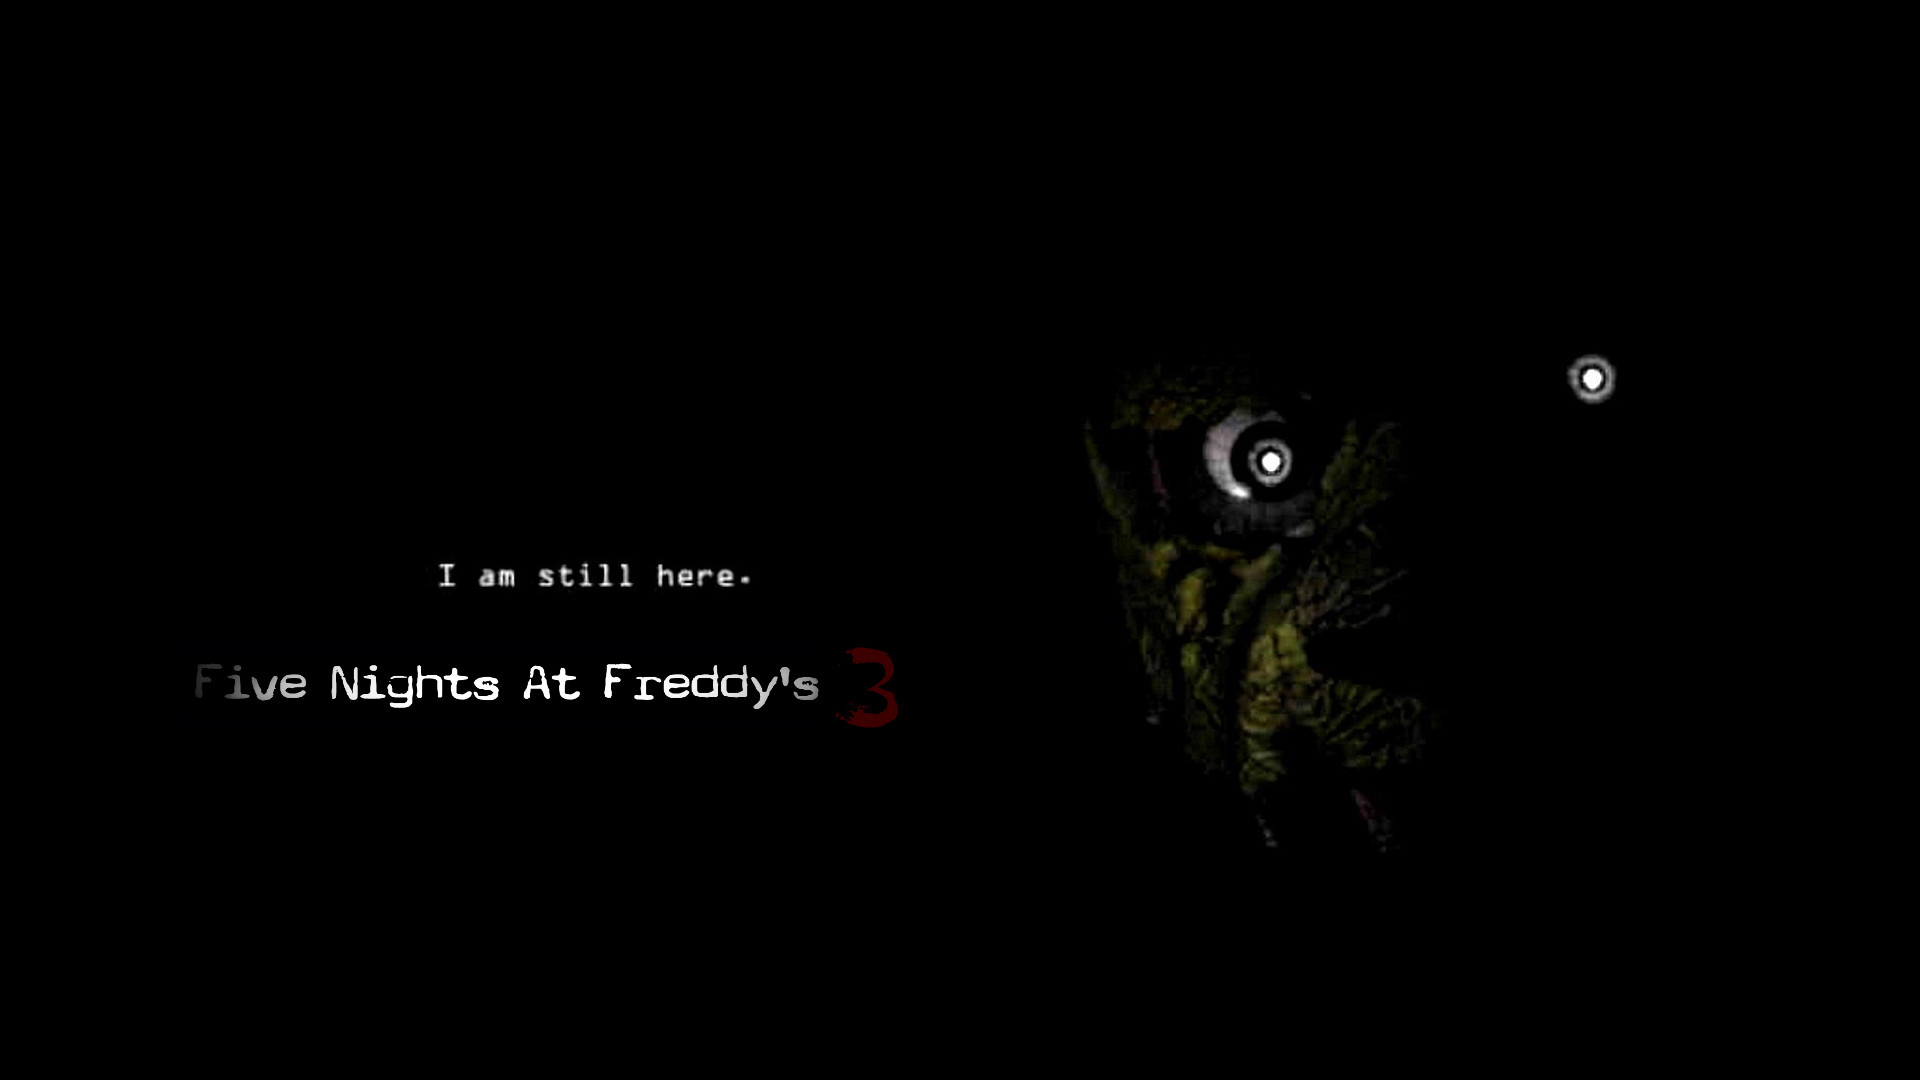 Five Nights At Freddys Wallpapers 80 Images